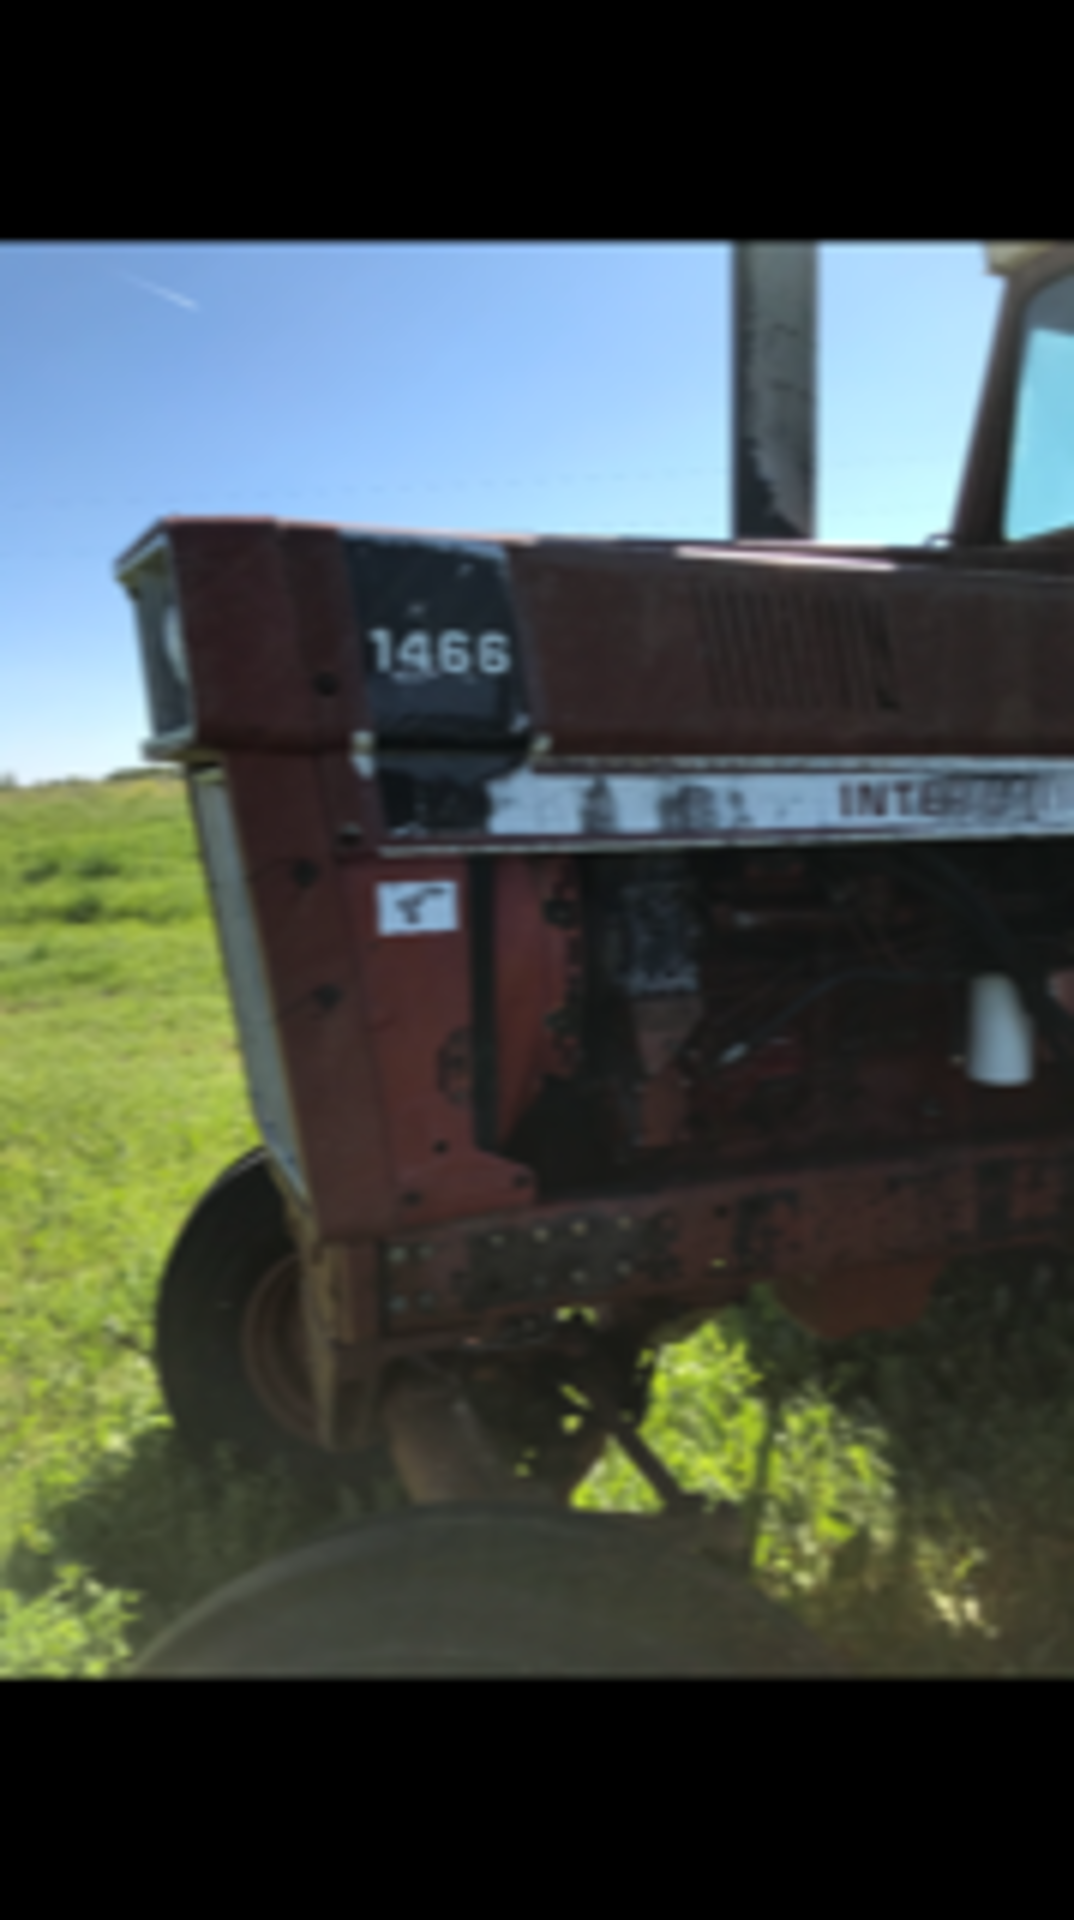 IHC 1466 Tractor, cab,540 - 1000 pto, 6979 hrs. showing sn:2650134U030334 - Image 2 of 5